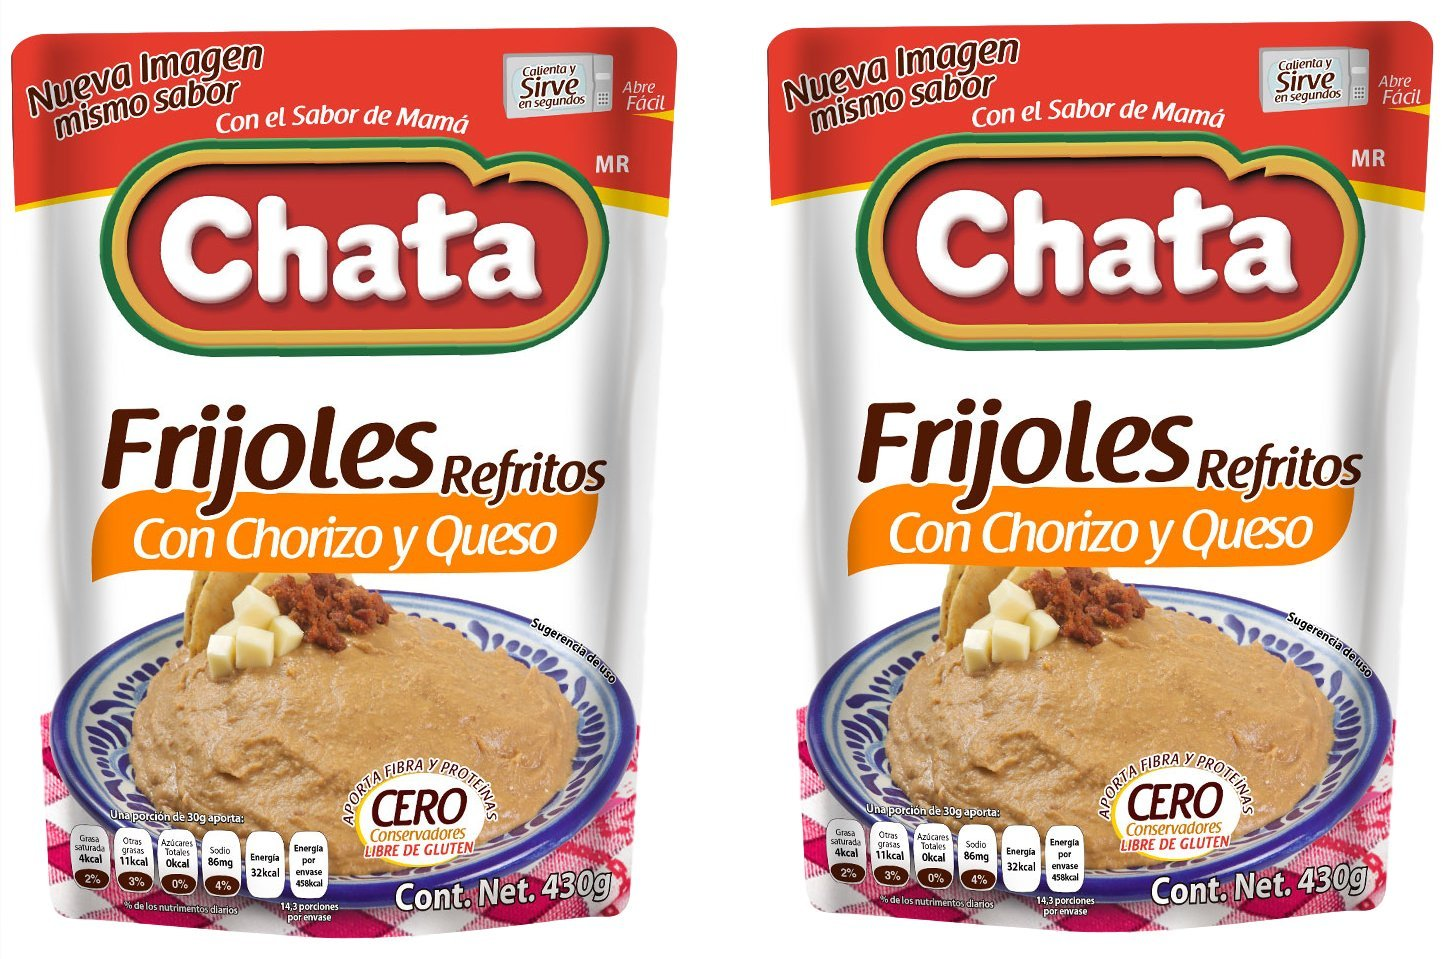 Amazon.com : Chata Frijoles con Chorizo y Queso - Mexican Beans - 15.1 ouces (Pack of 2) : Grocery & Gourmet Food